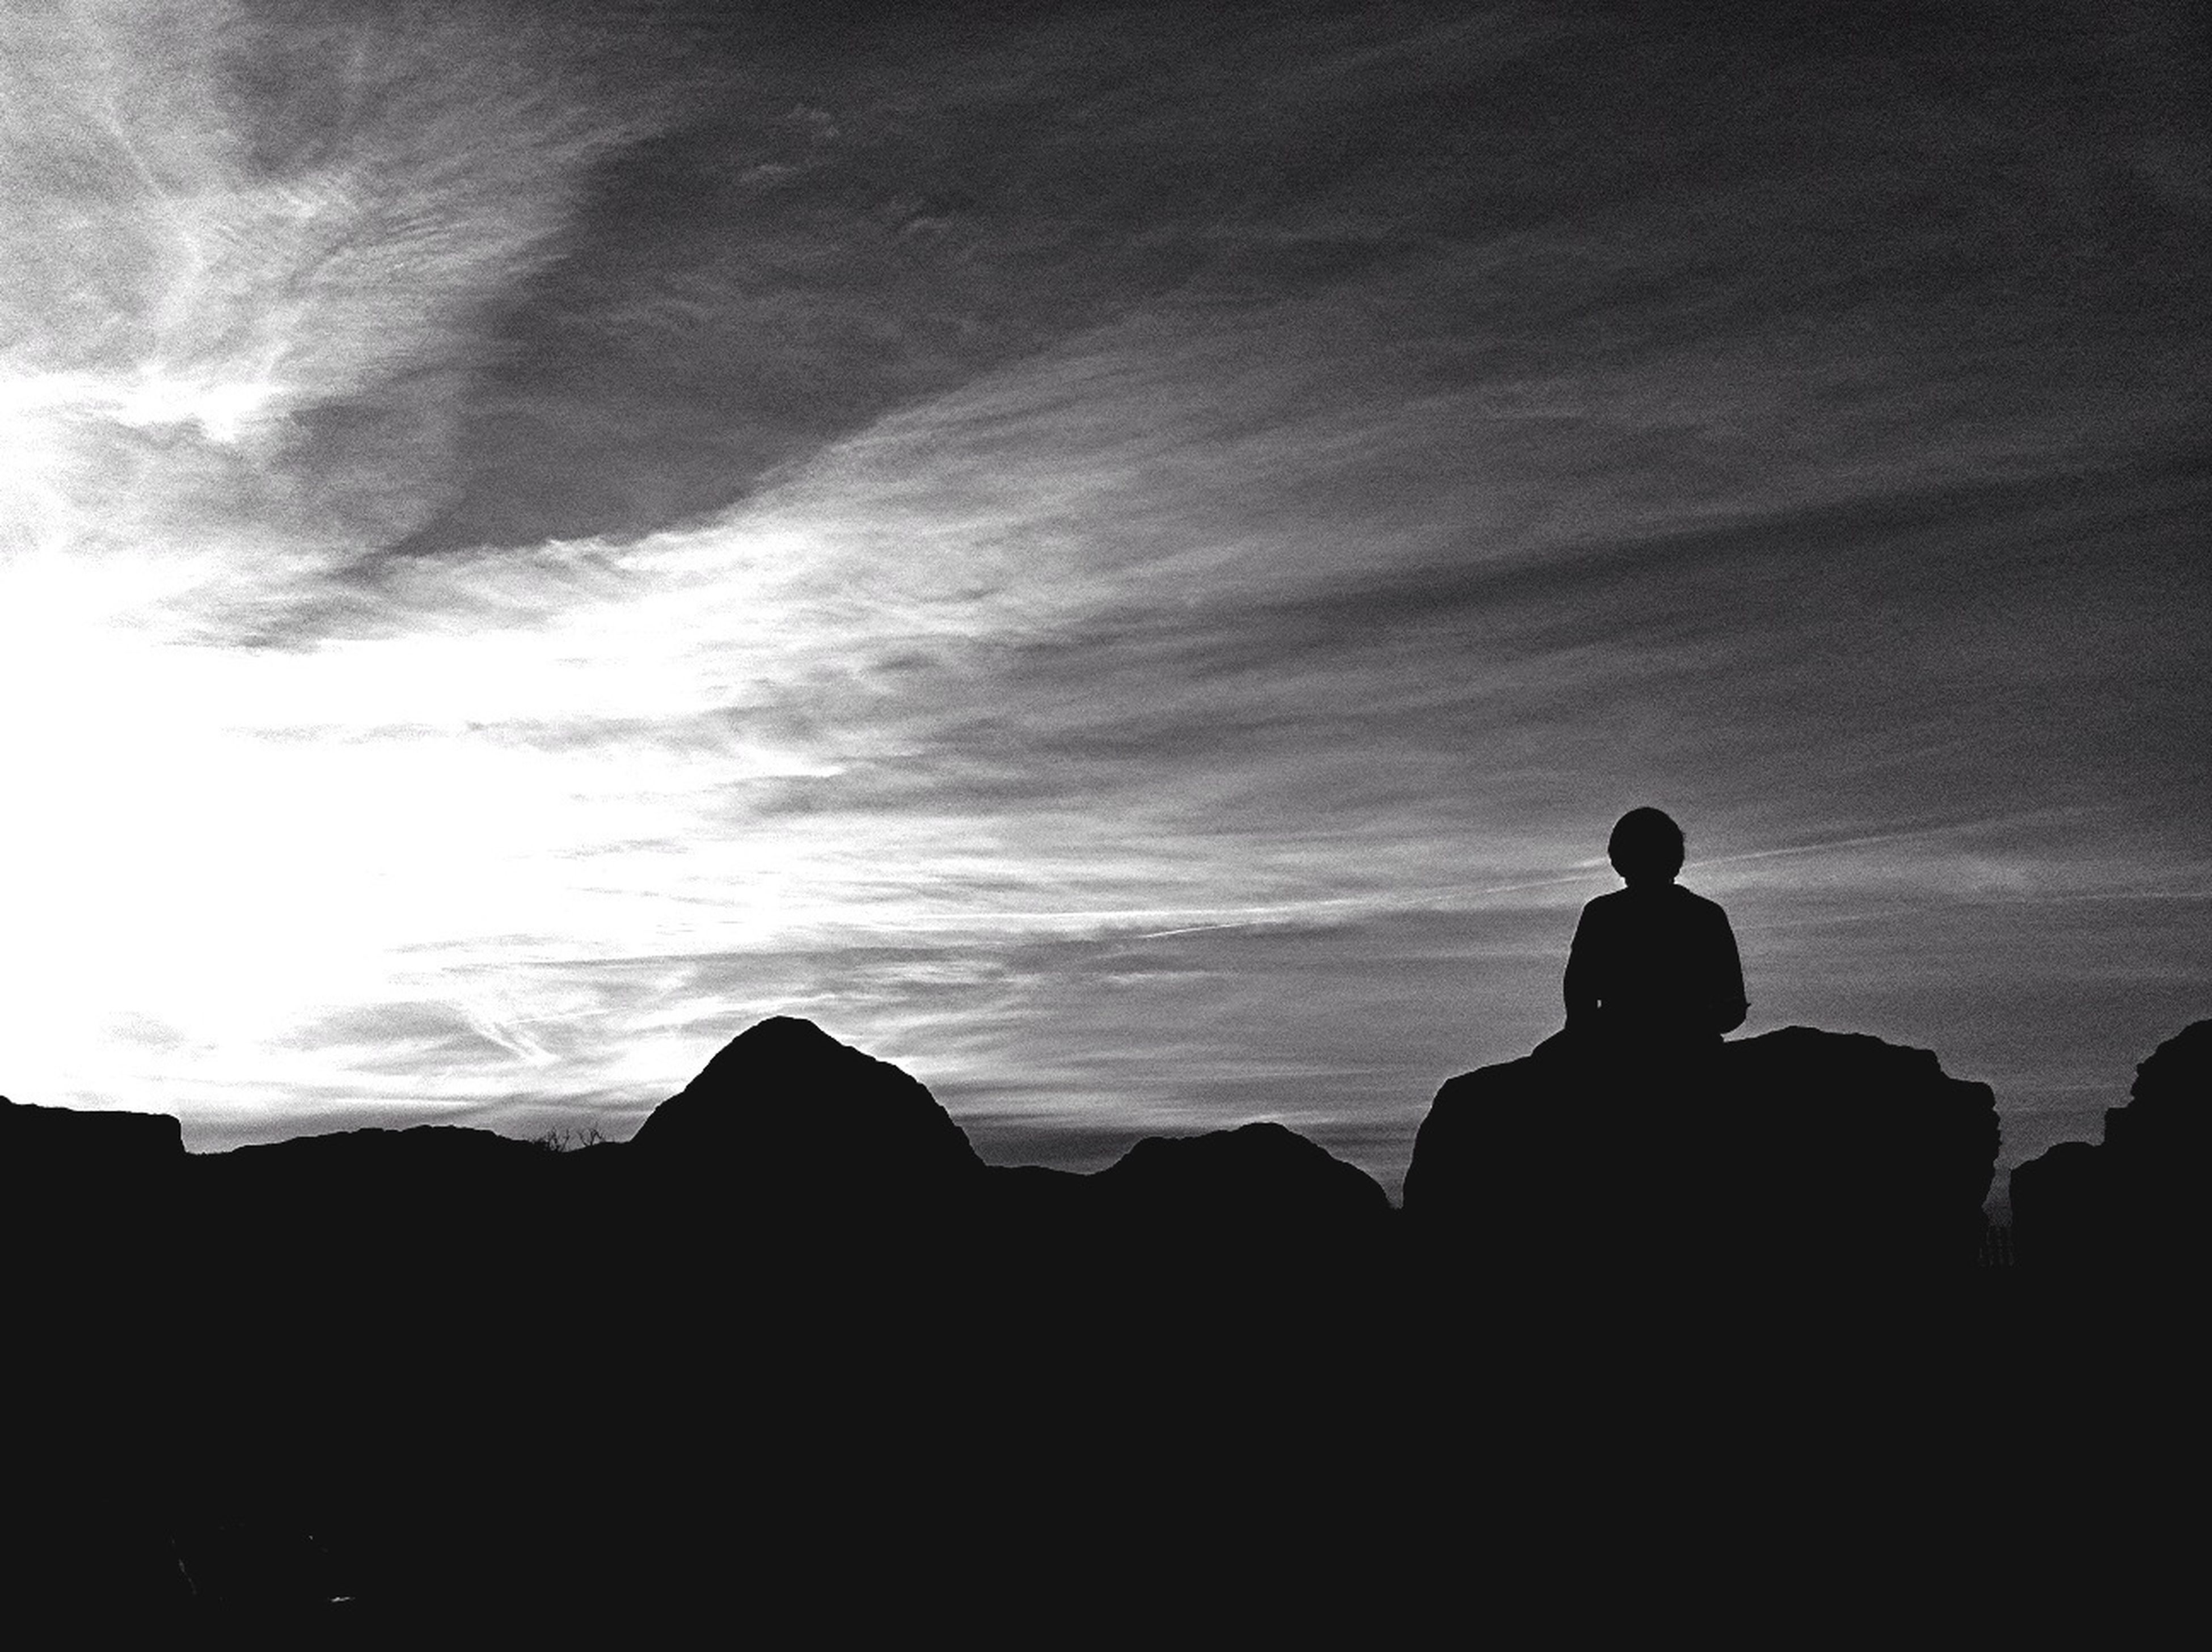 silhouette, sky, tranquility, scenics, cloud - sky, tranquil scene, beauty in nature, outline, sunset, nature, dusk, dark, copy space, landscape, cloud, idyllic, men, standing, outdoors